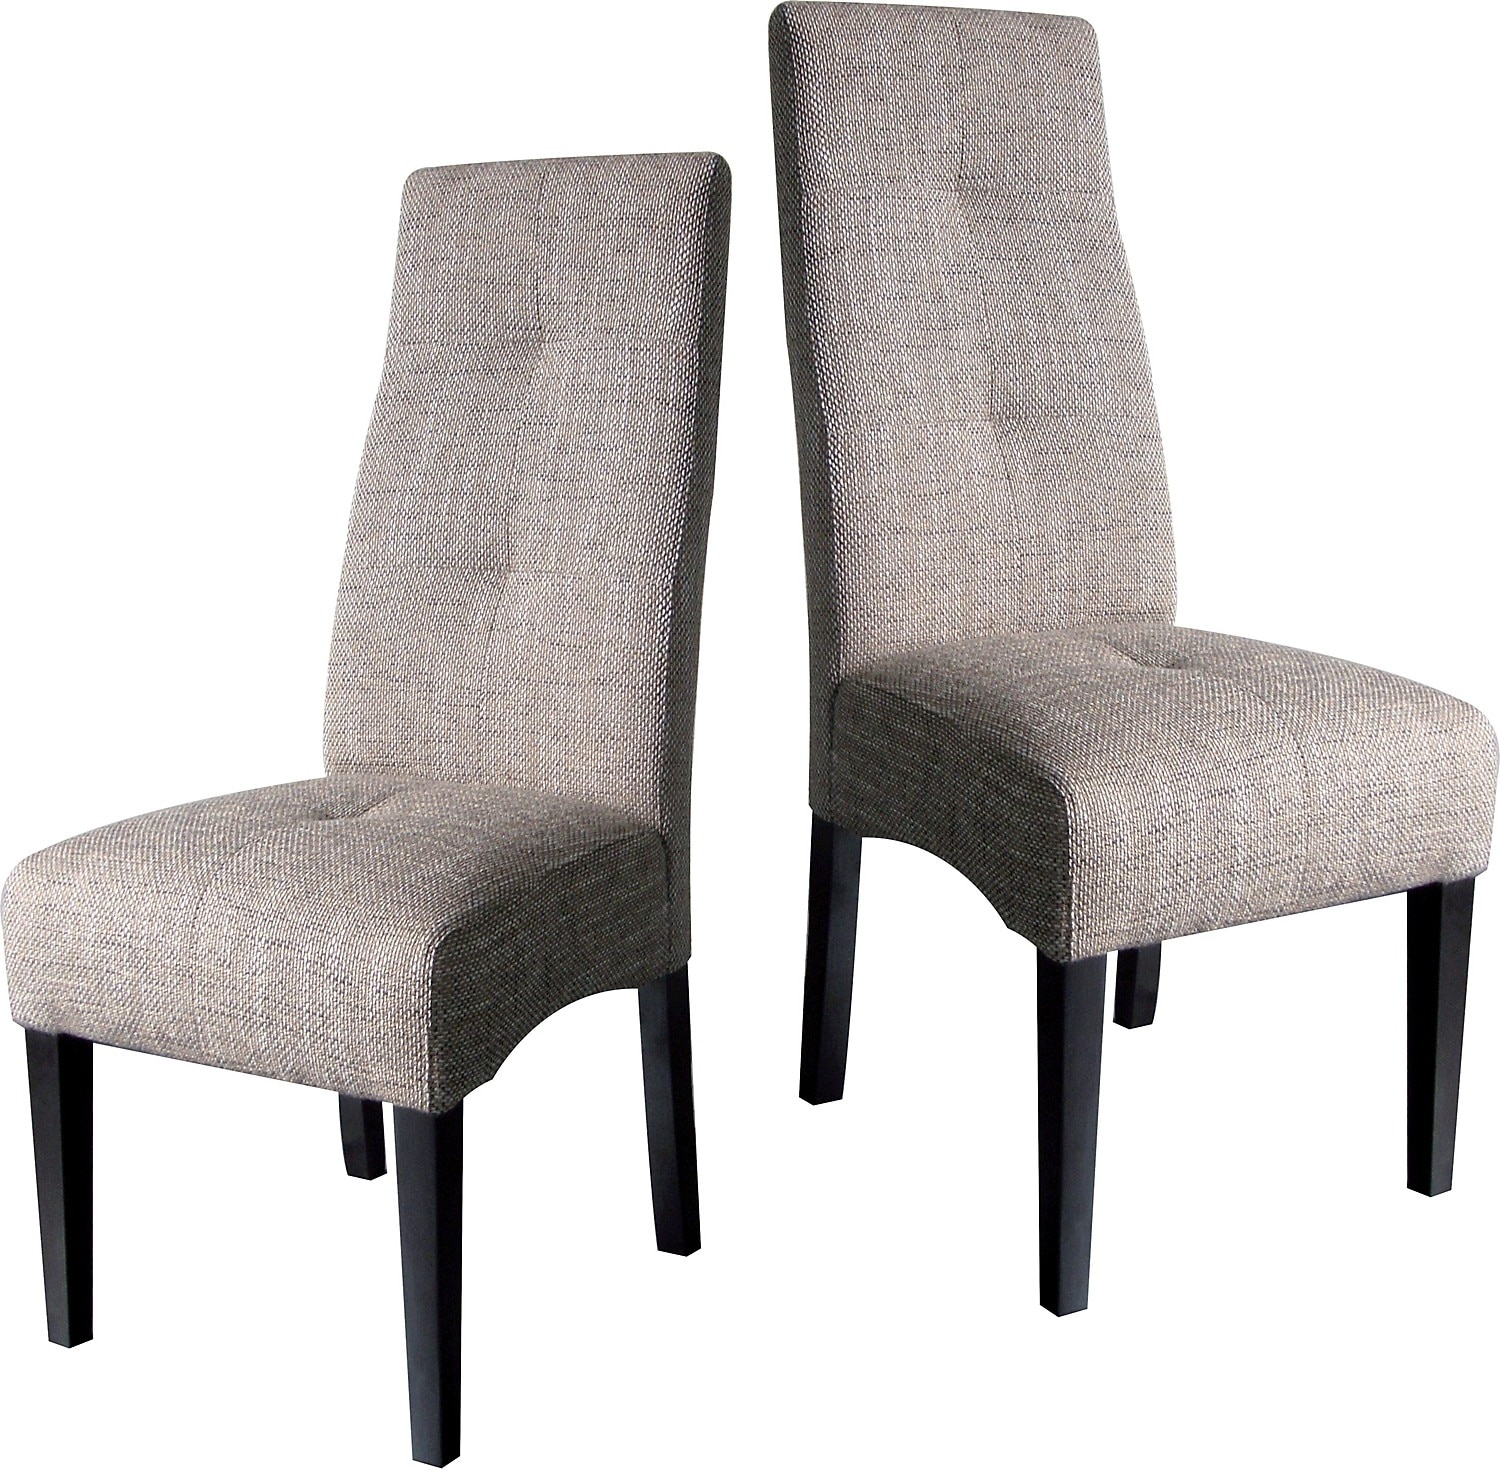 Dining Room Furniture - Idea Beige Linen Two Chair Package